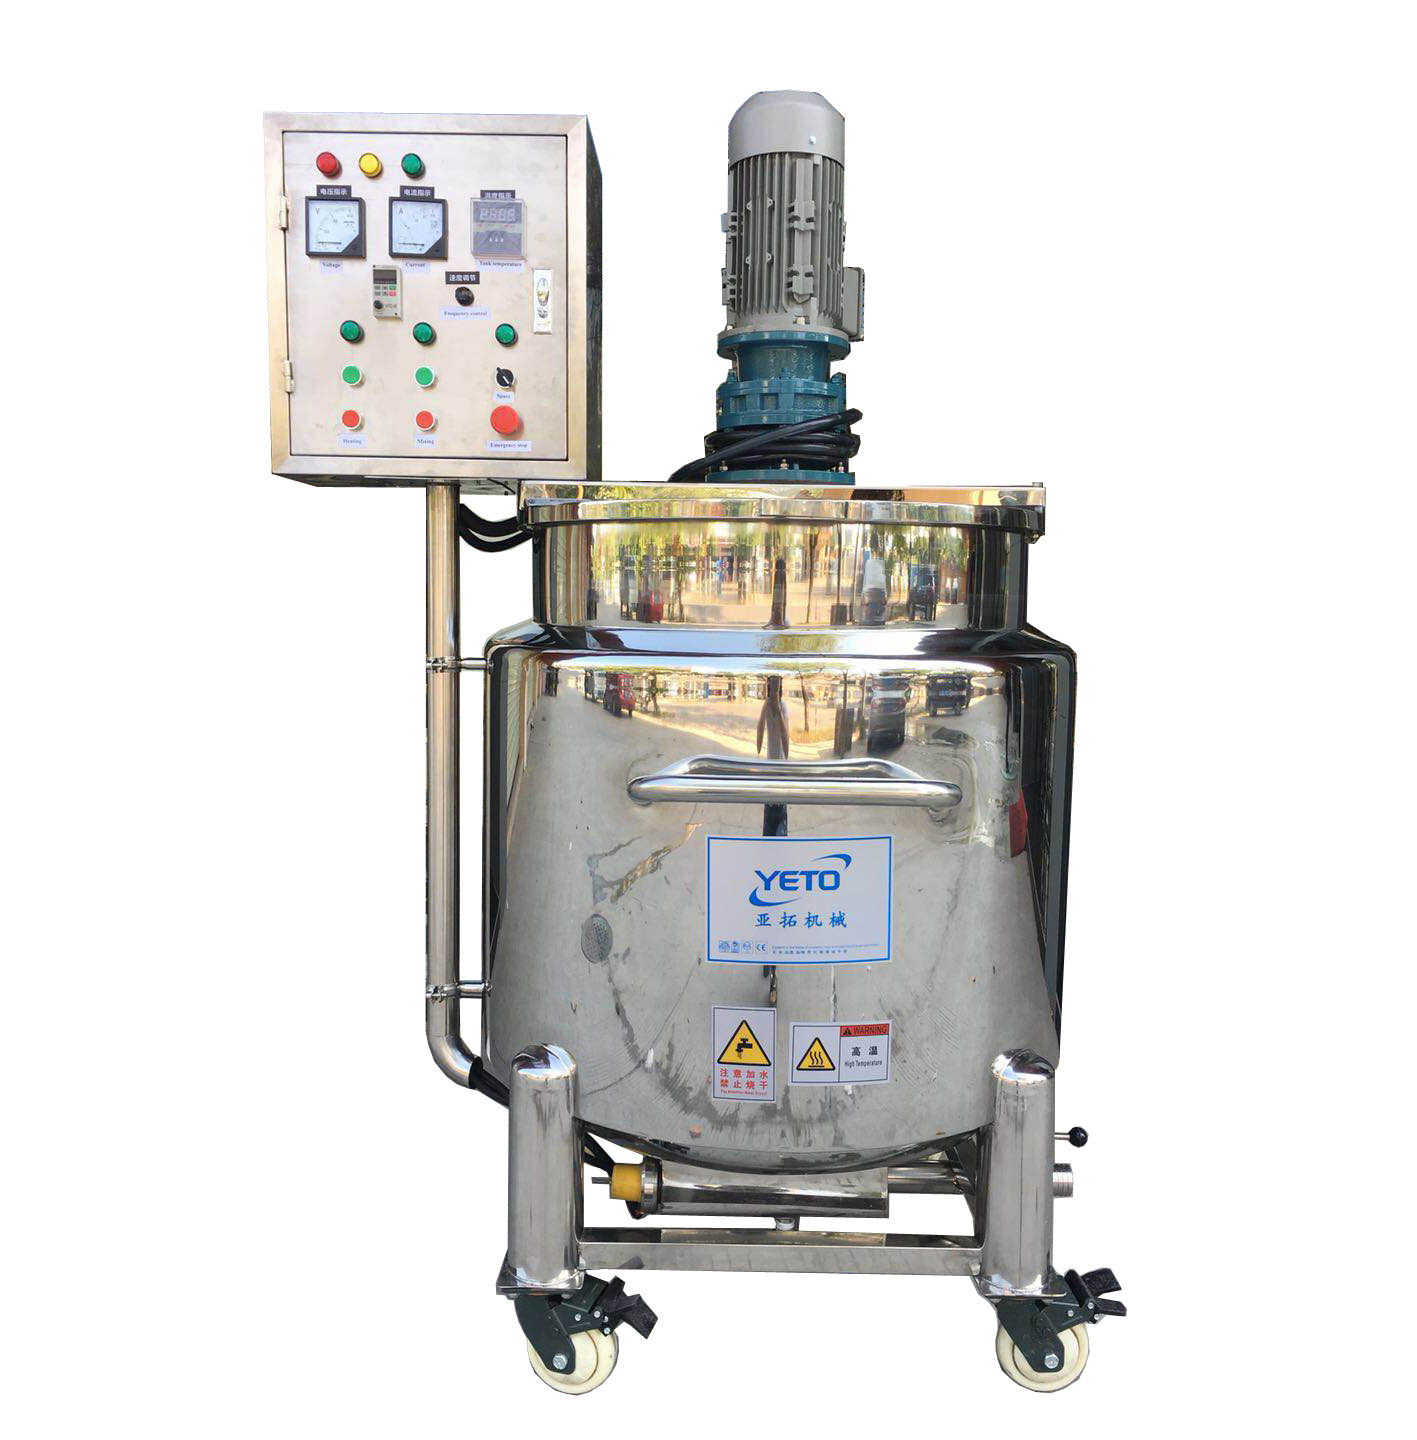 YETO soap making heating mixing blender equipment cosmetics wax food mixer agitator blender